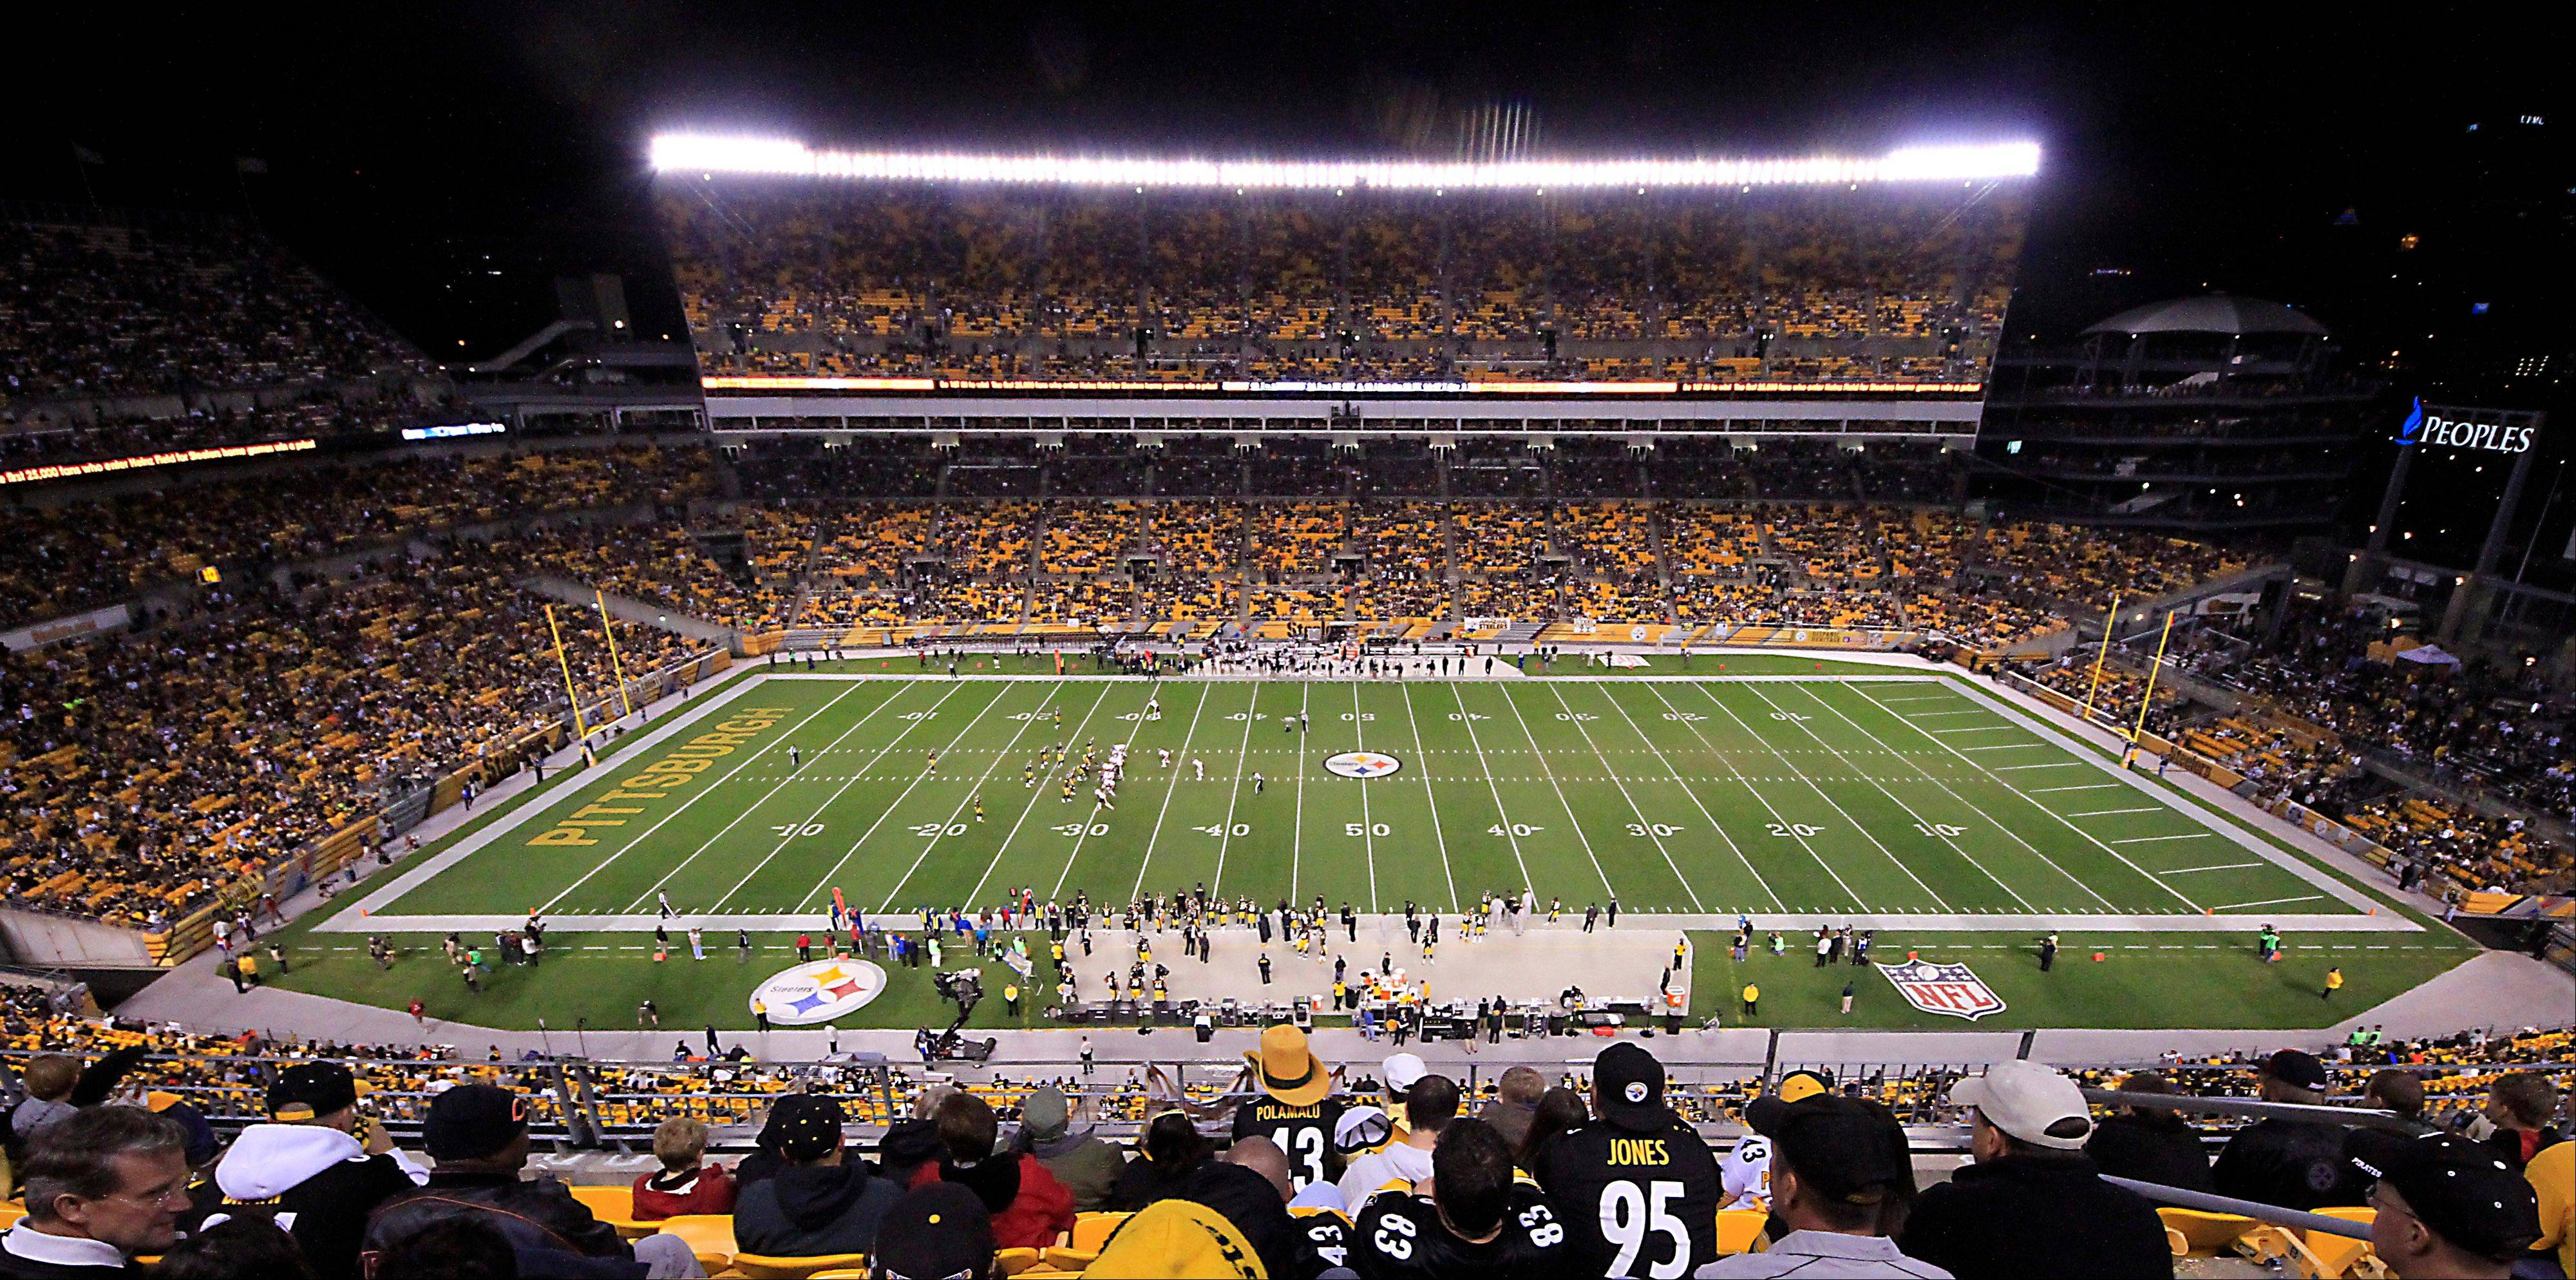 Pittsburgh Steelers fans watch from the upper deck seats at Heinz Field in the third quarter.